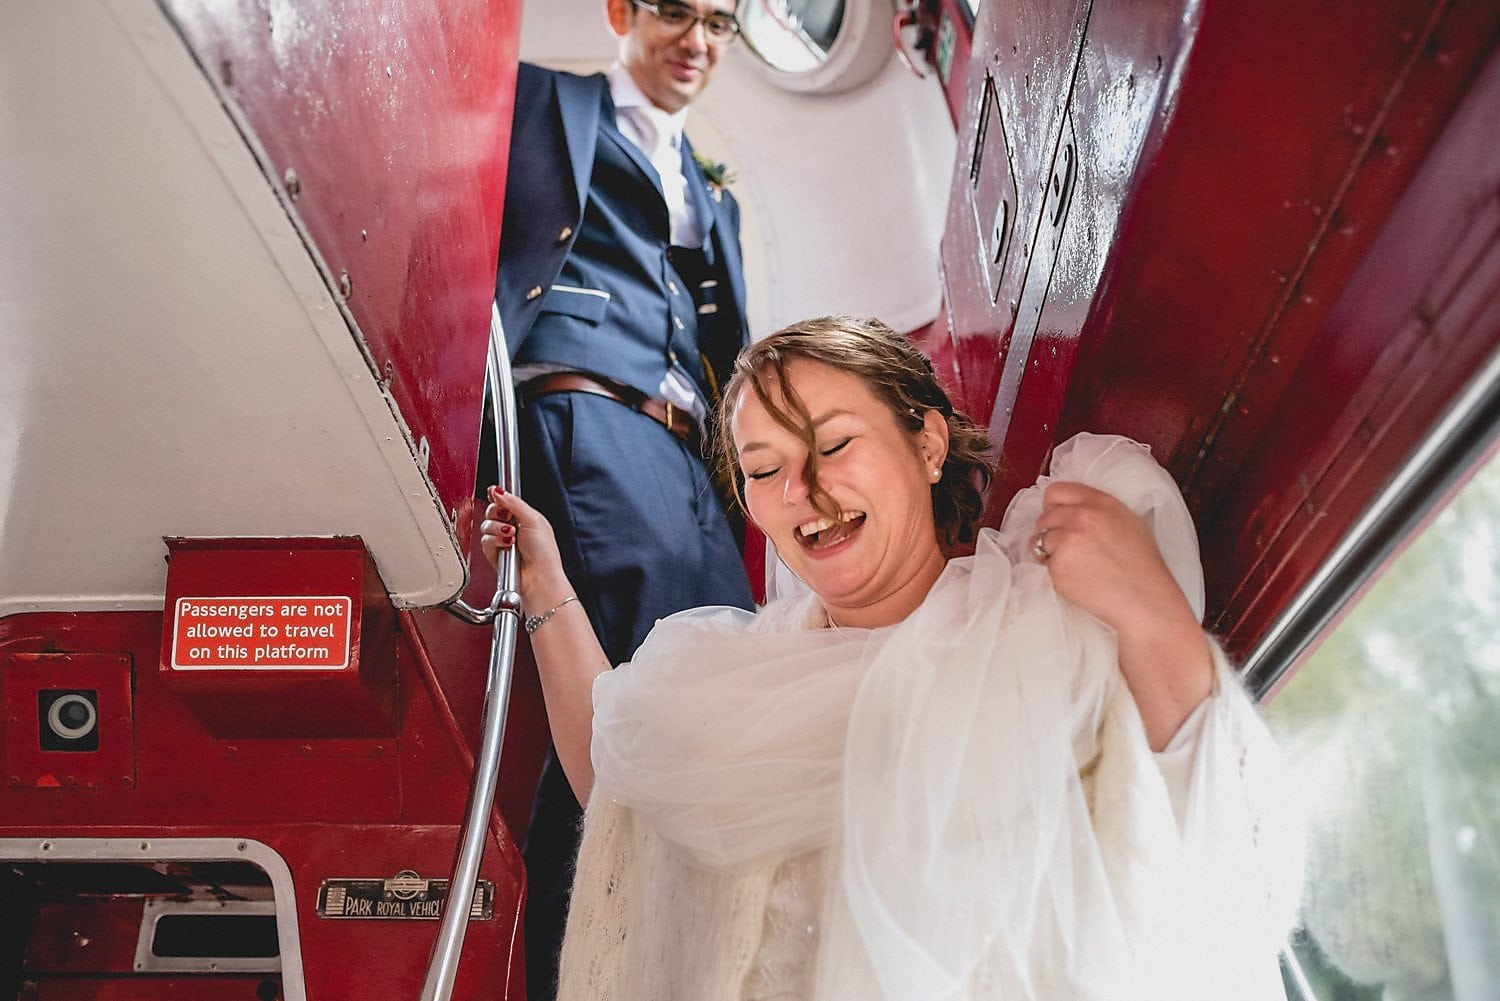 The bride laughs and holds up her dress as she makes it down the narrow stairs of the bus